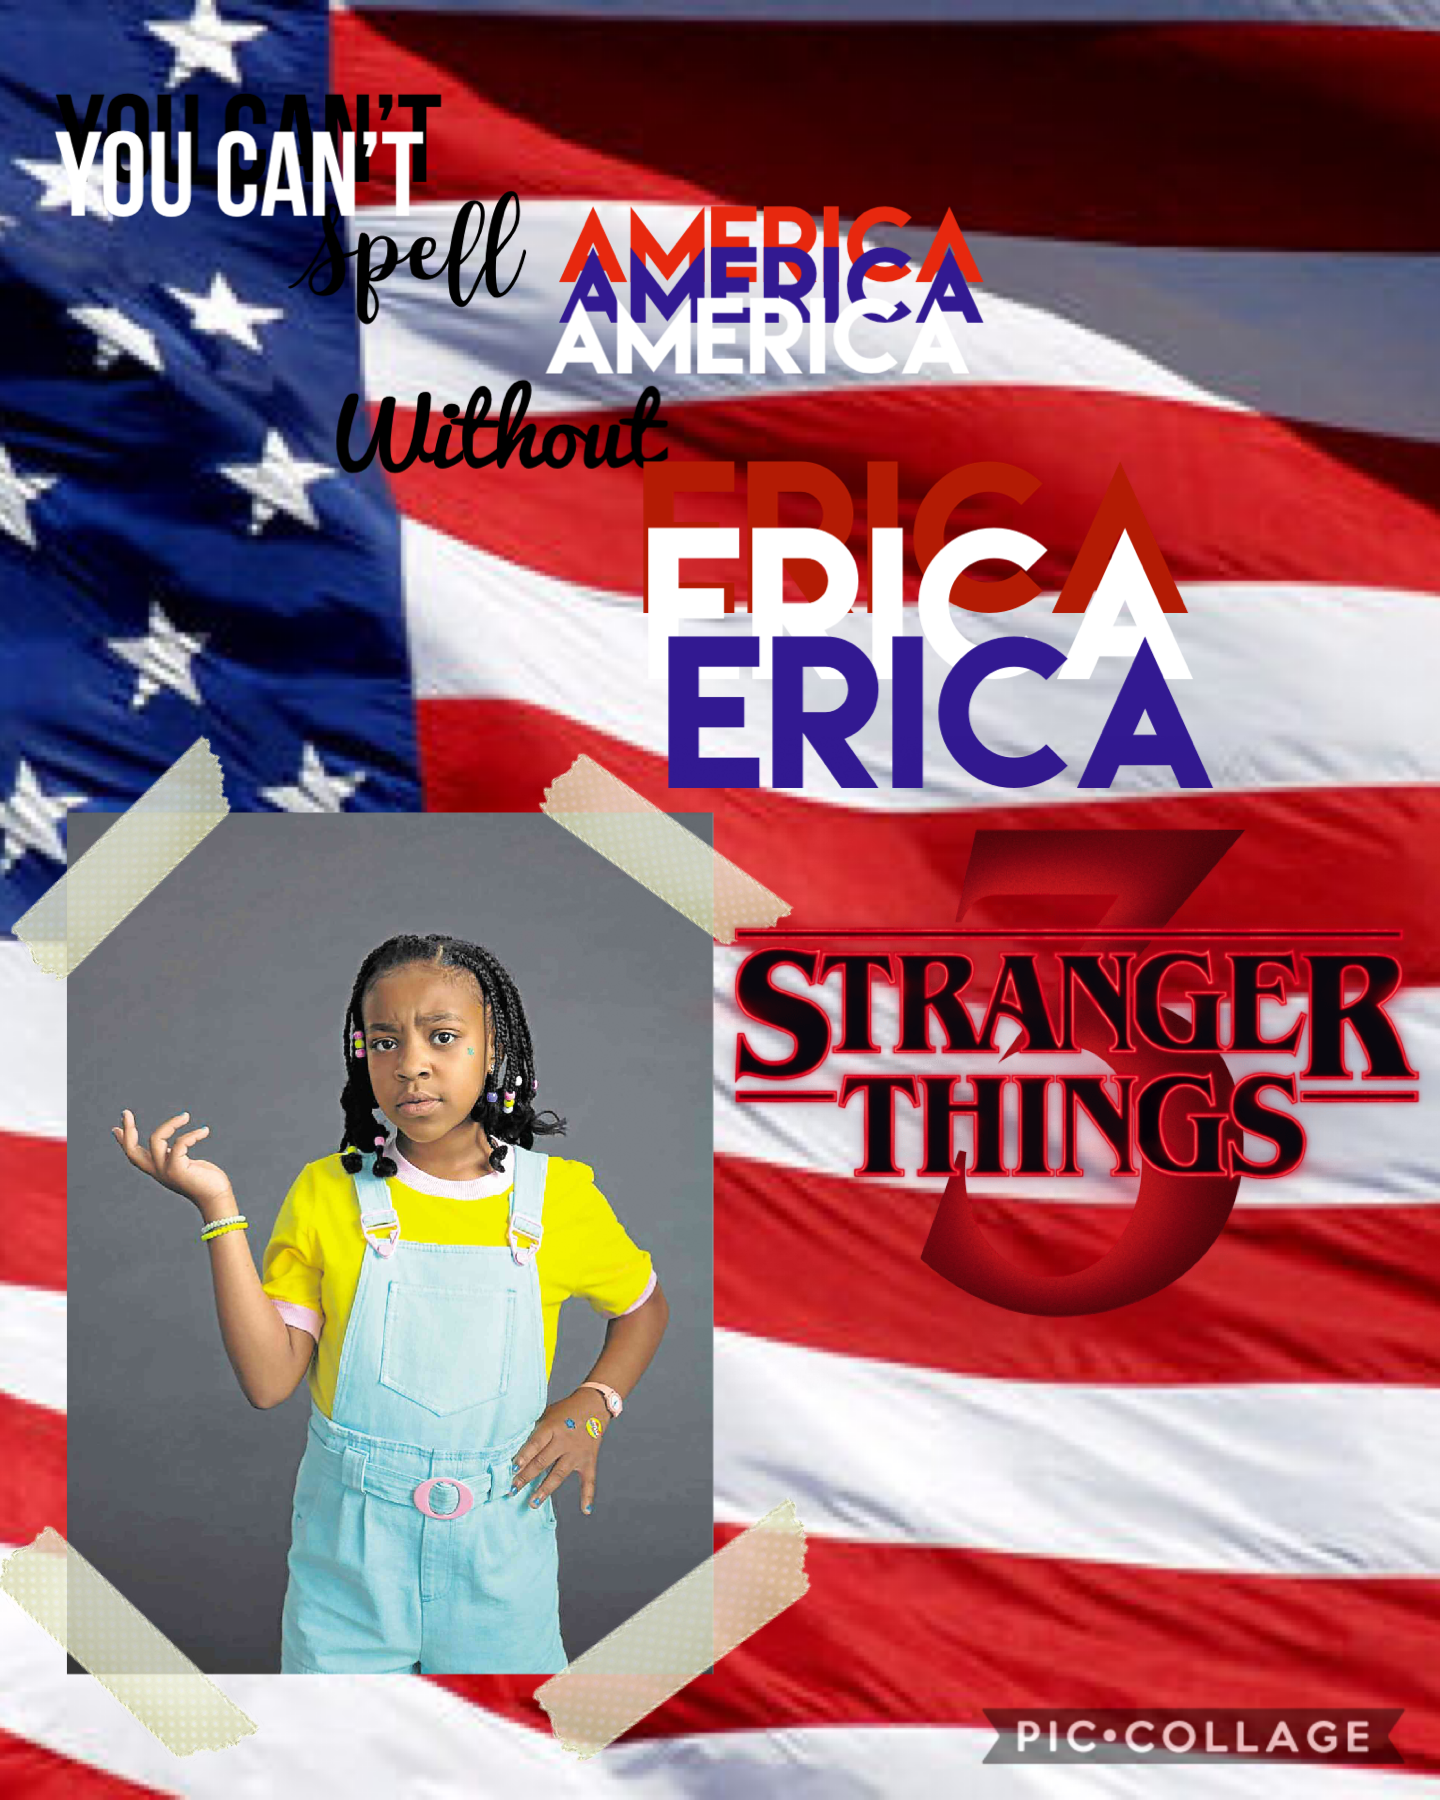 You can't spell America without Erica🇺🇸